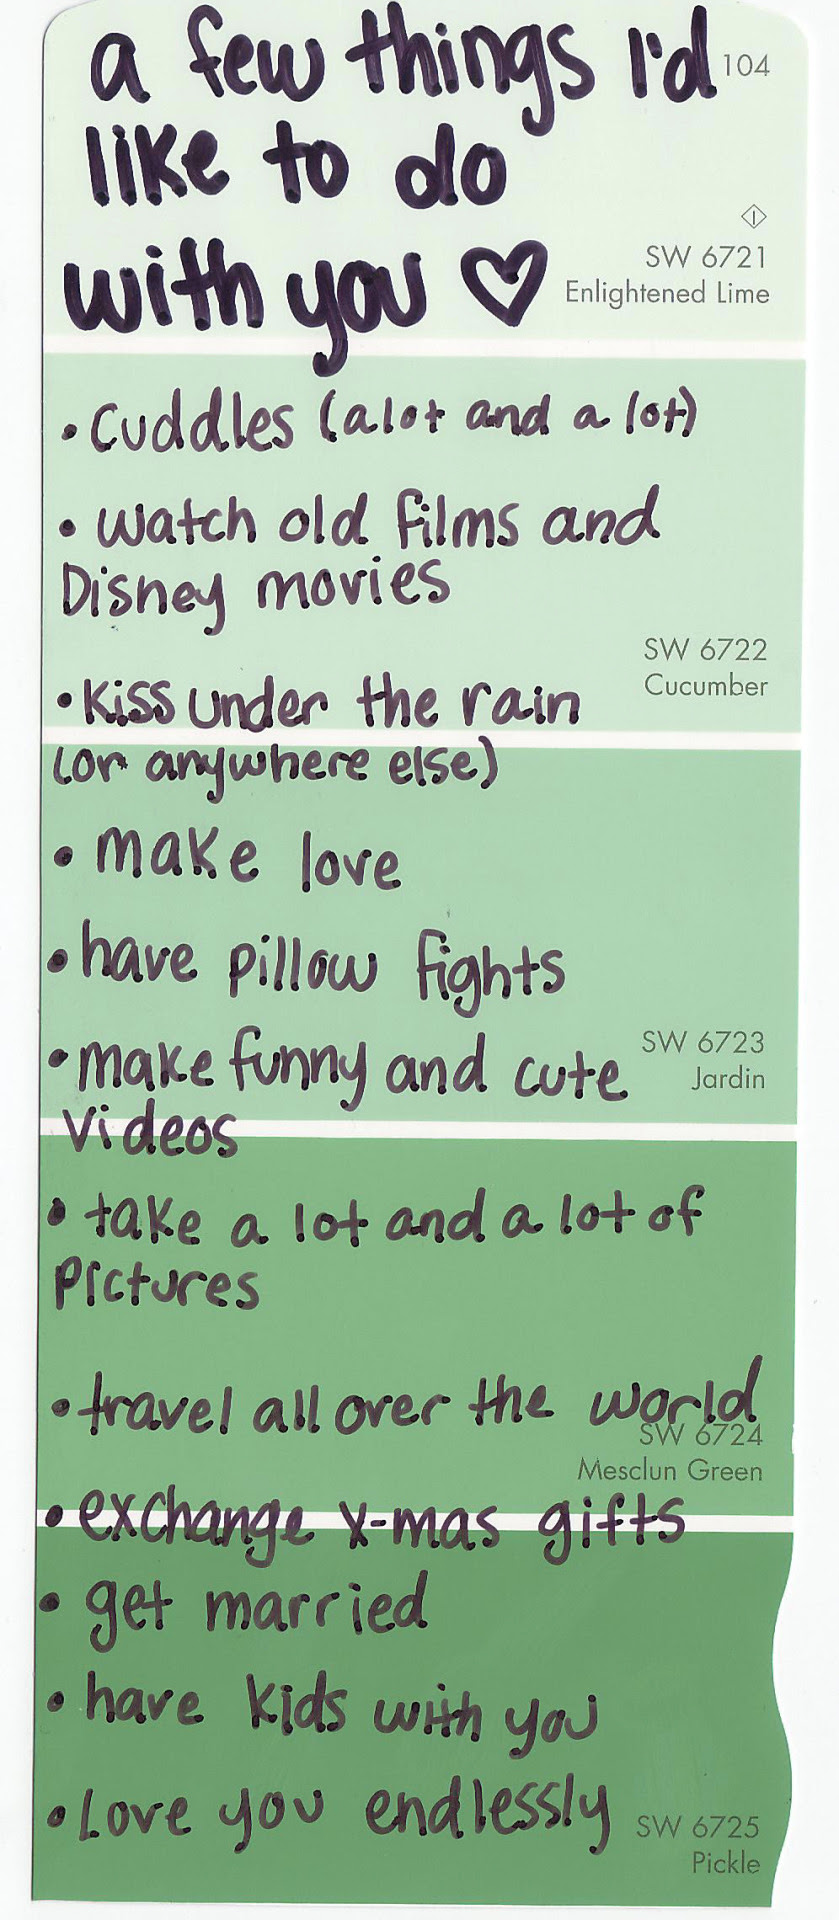 love kiss i love you Cuddle travel minee list disney movies love quote vertical Get Married